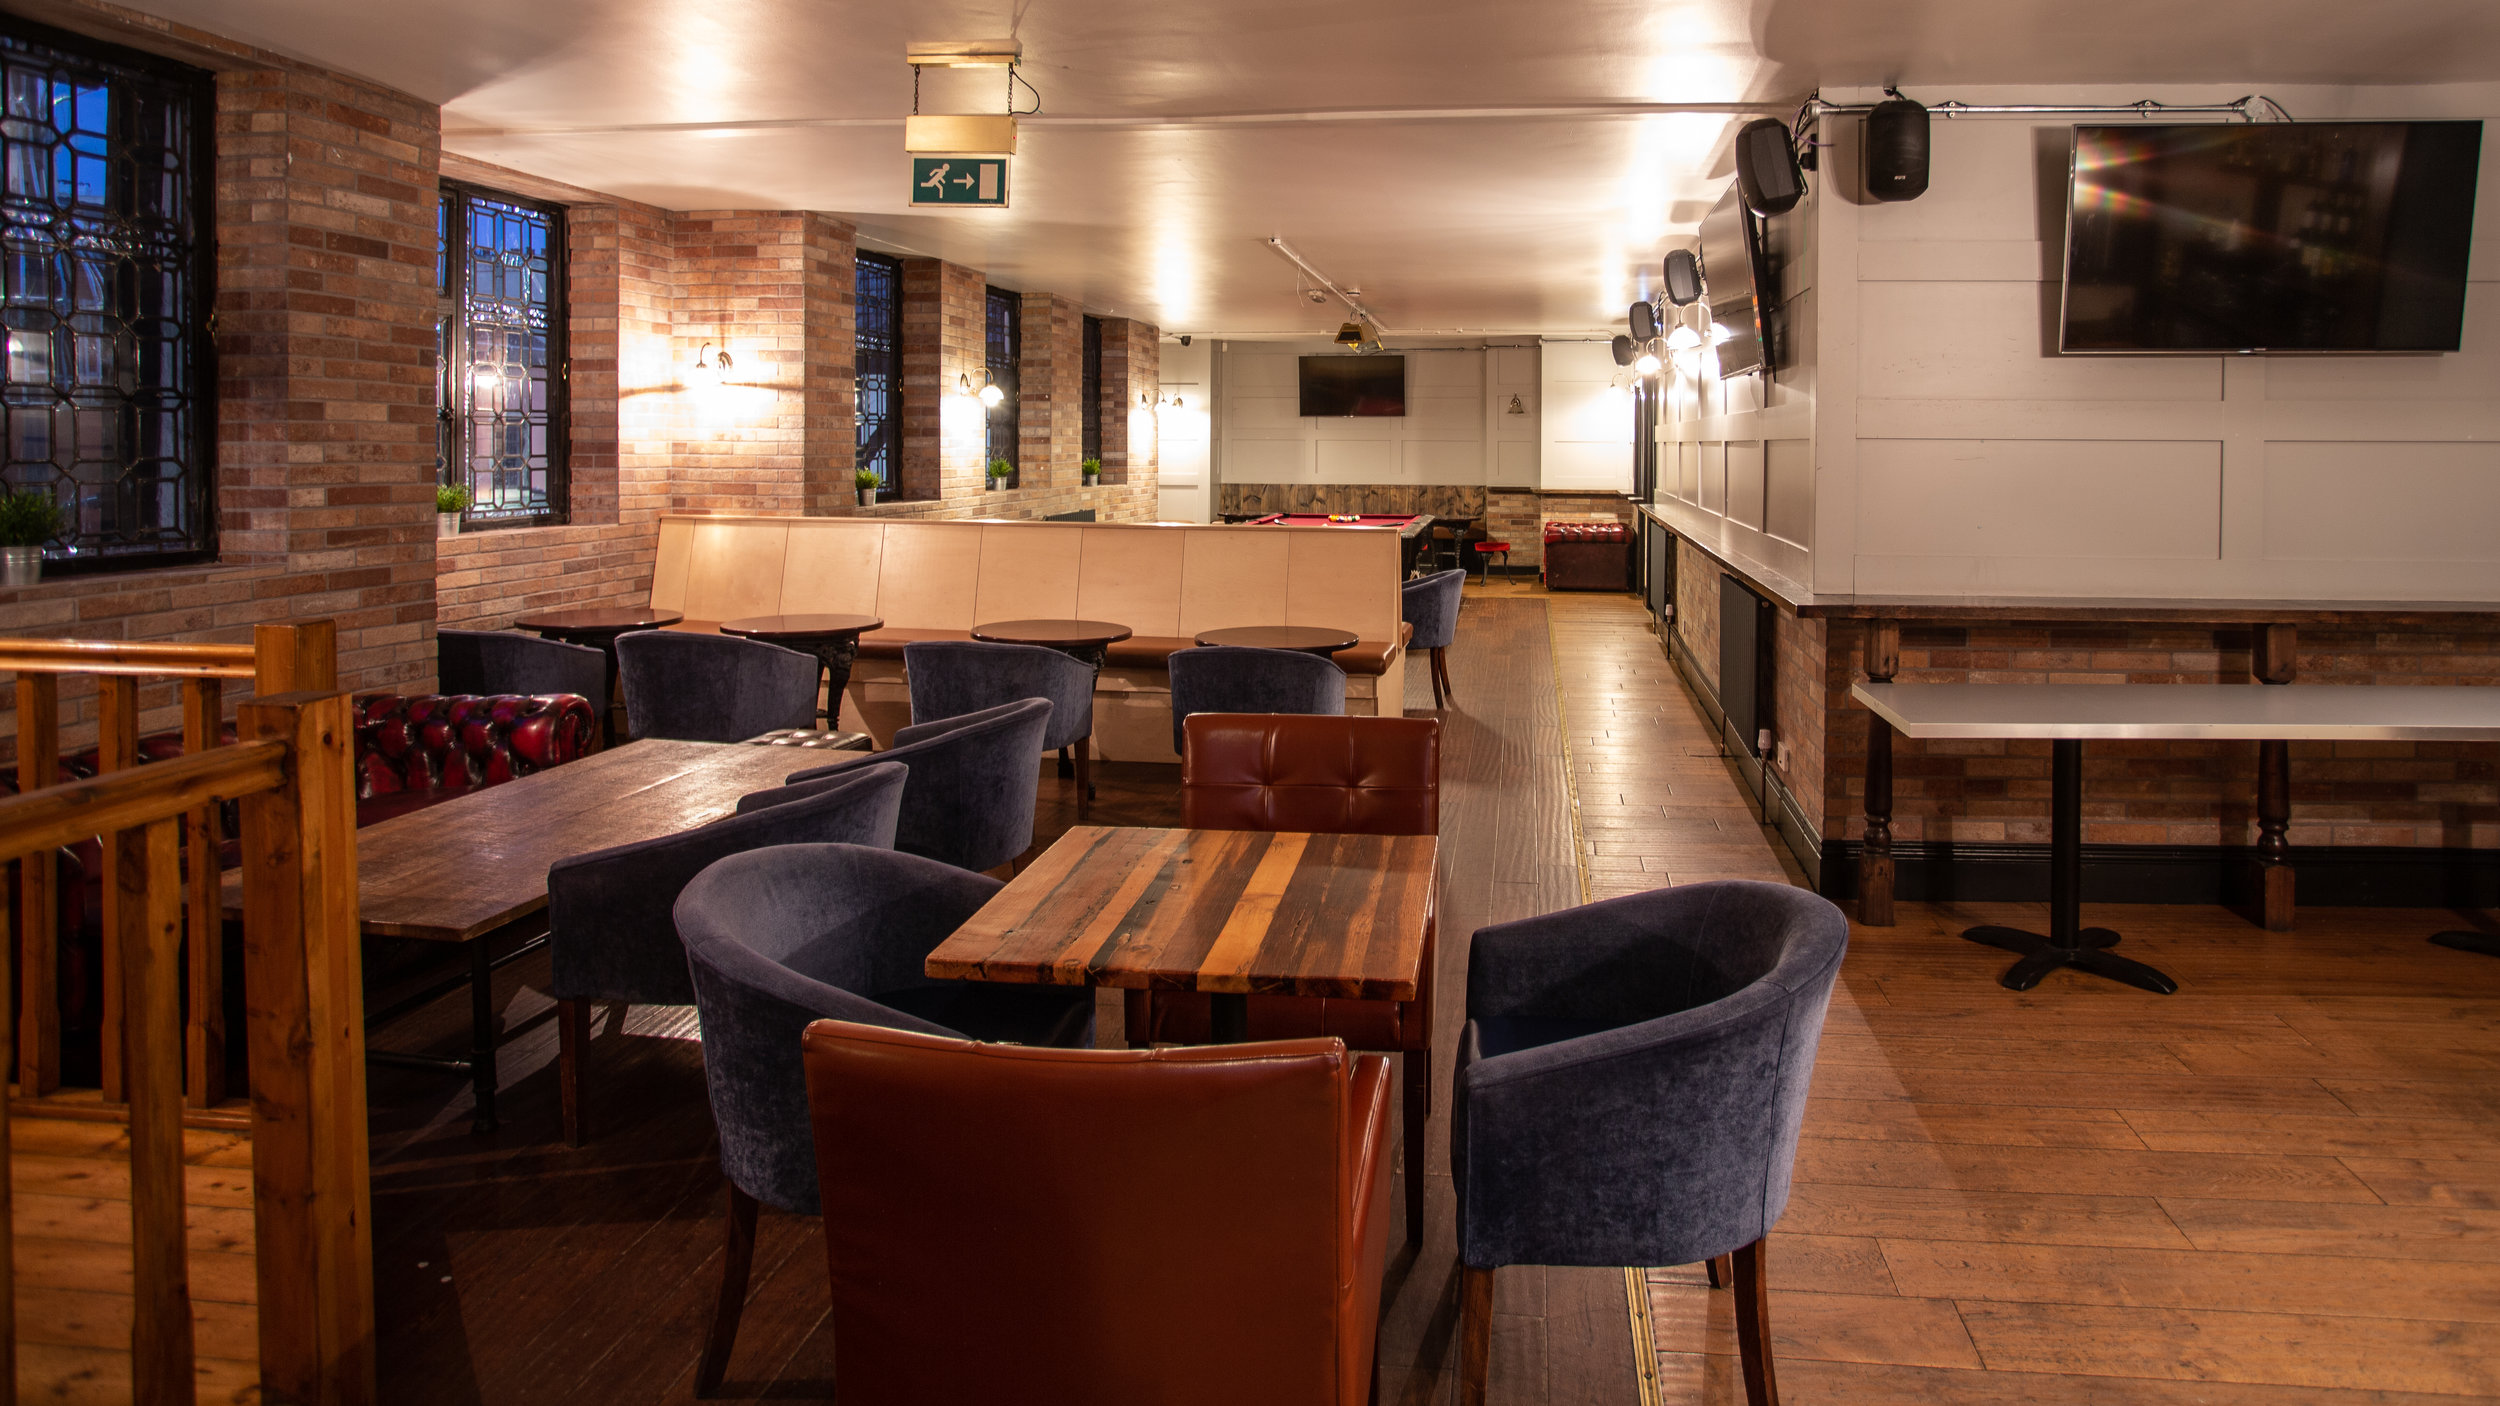 want to hire our tudor lounge? - The Tudor Lounge is situated upstairs at Parkside Tavern and is available for private hire. It contains a 9ft Sam K Steel pool table, as well as it's own bar.